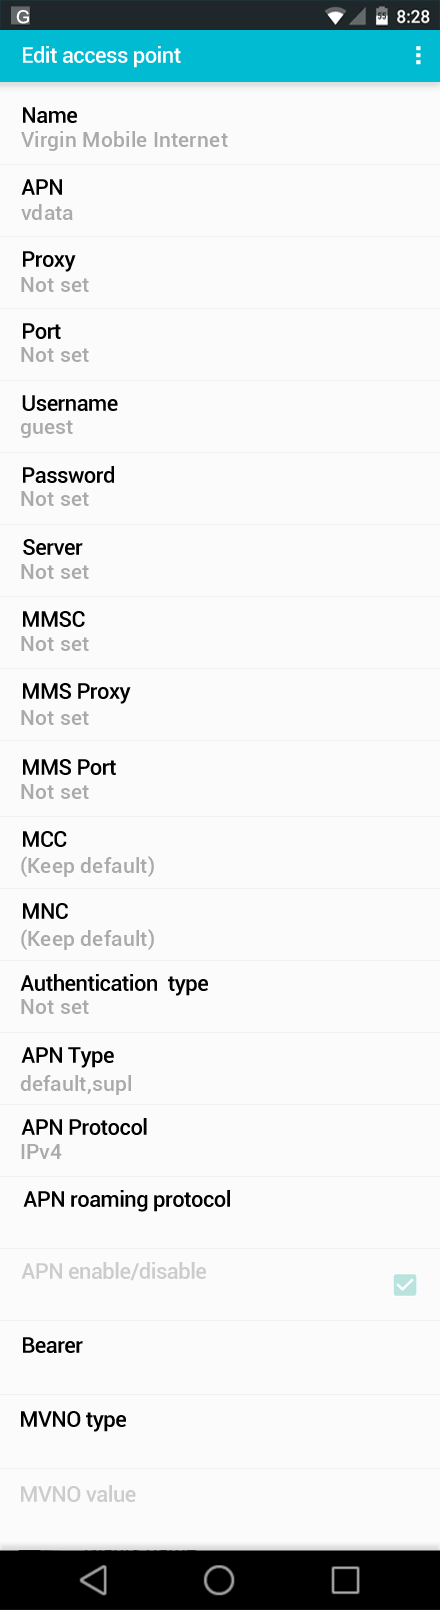 Virgin Mobile Internet APN settings for Android